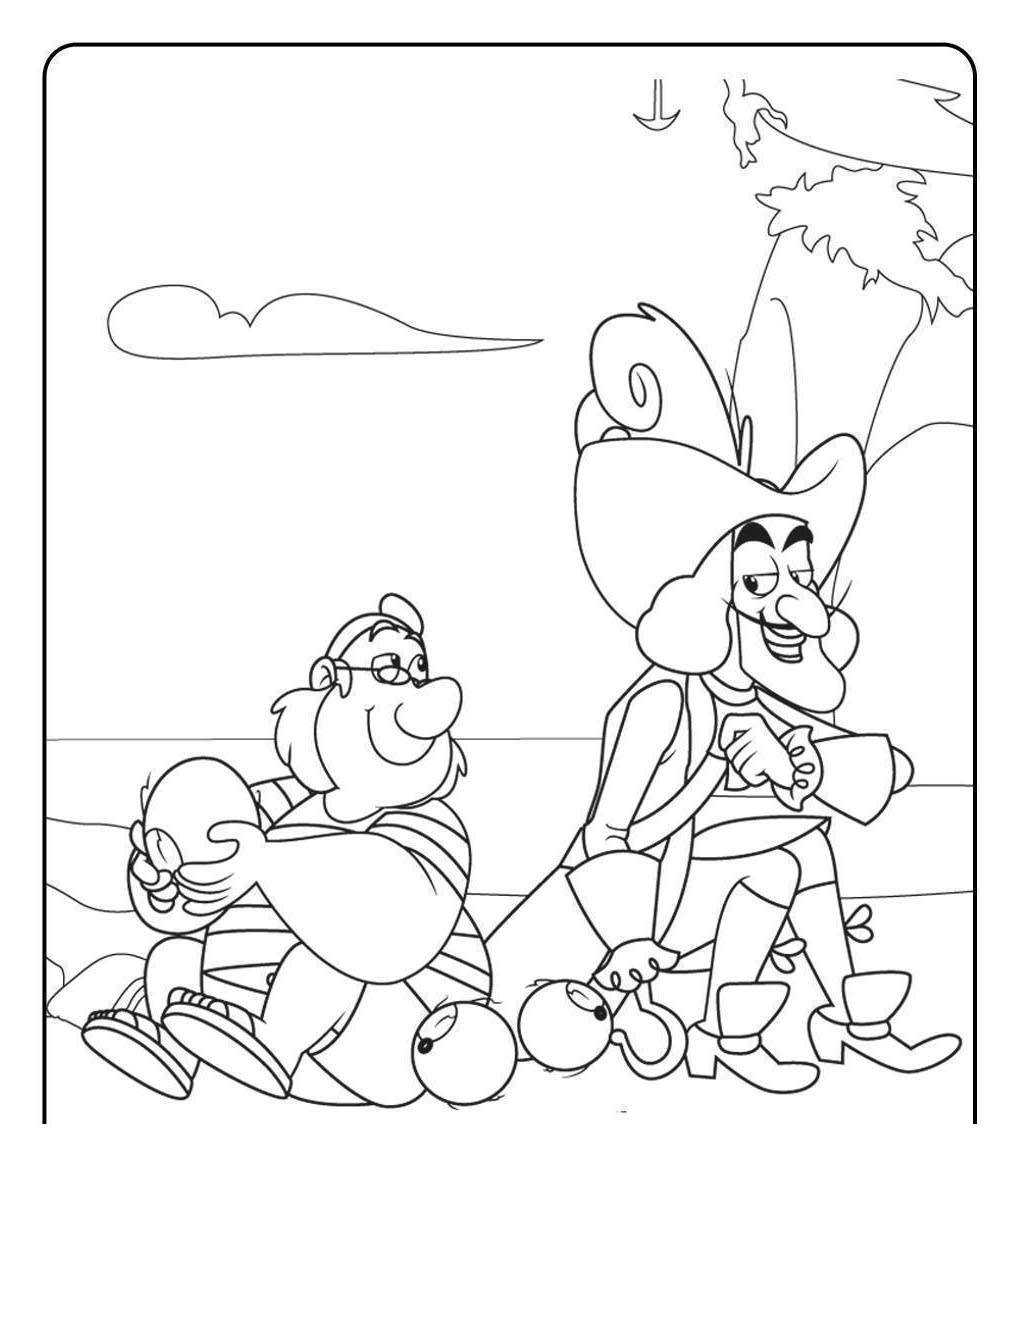 Free Jake And The Neverland Pirates Coloring Pages Disney Sheets Coloring Book printable